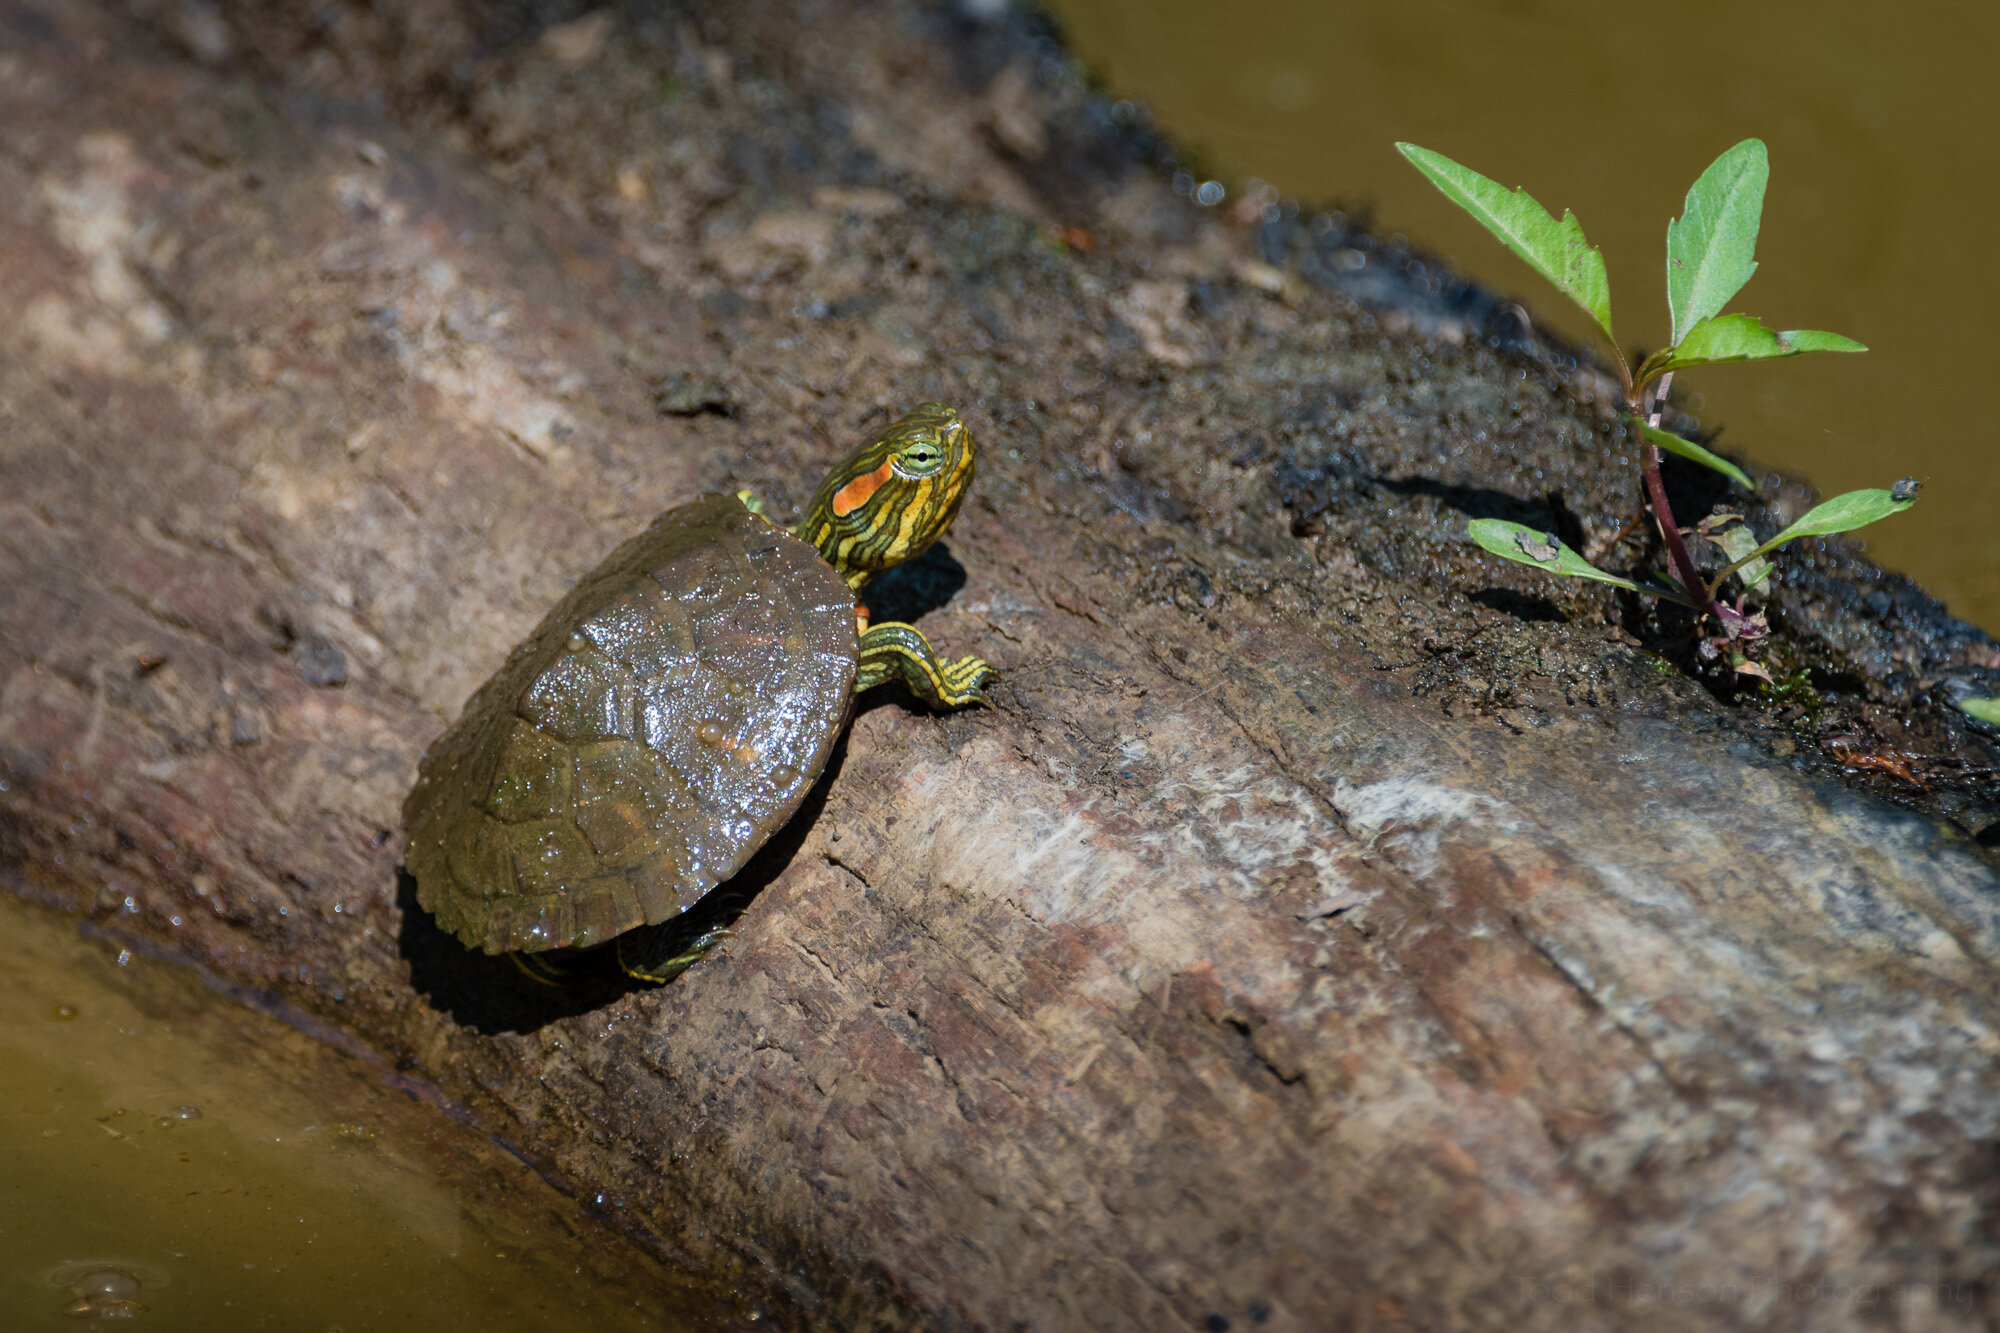 A small baby turtle slowly climbing out of the water onto a log, hoping for that nice quiet piece of sunshine to bask in.